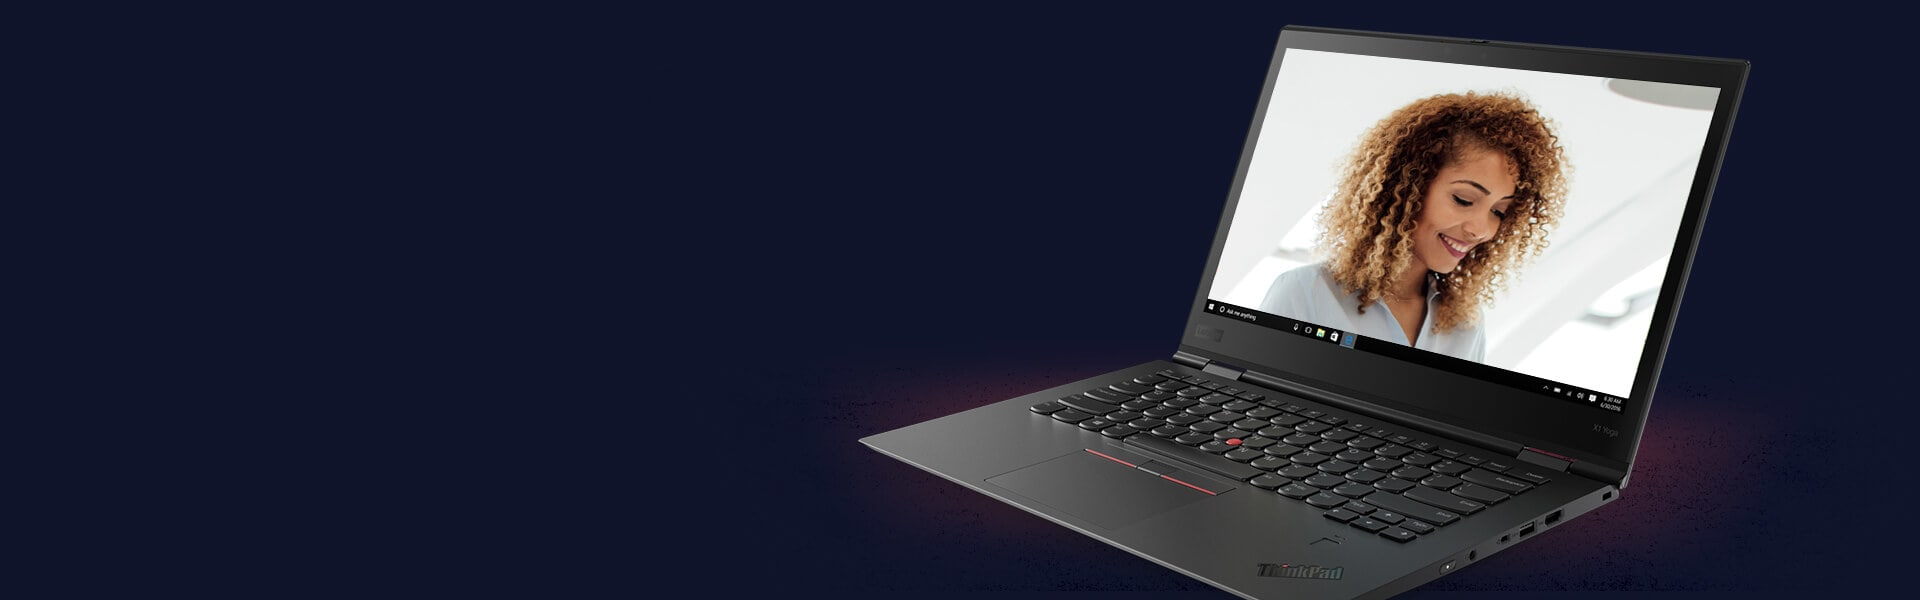 542d0375abfa65 Discounted   Clearance Laptops